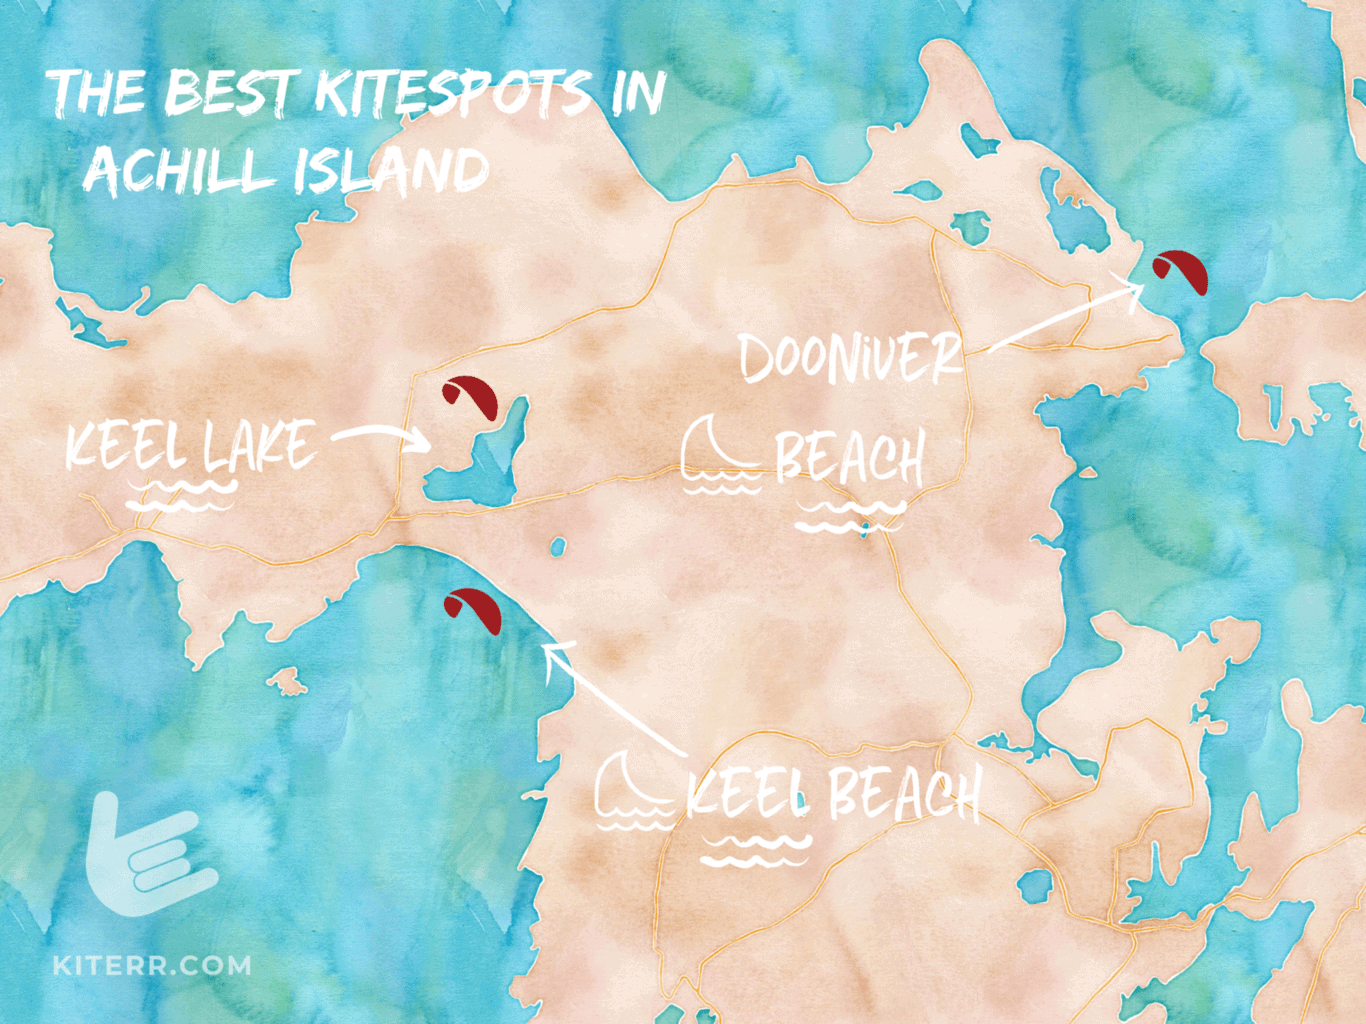 A map of the best kiteboarding spots in Ireland's Achill Island // Kiterrcom